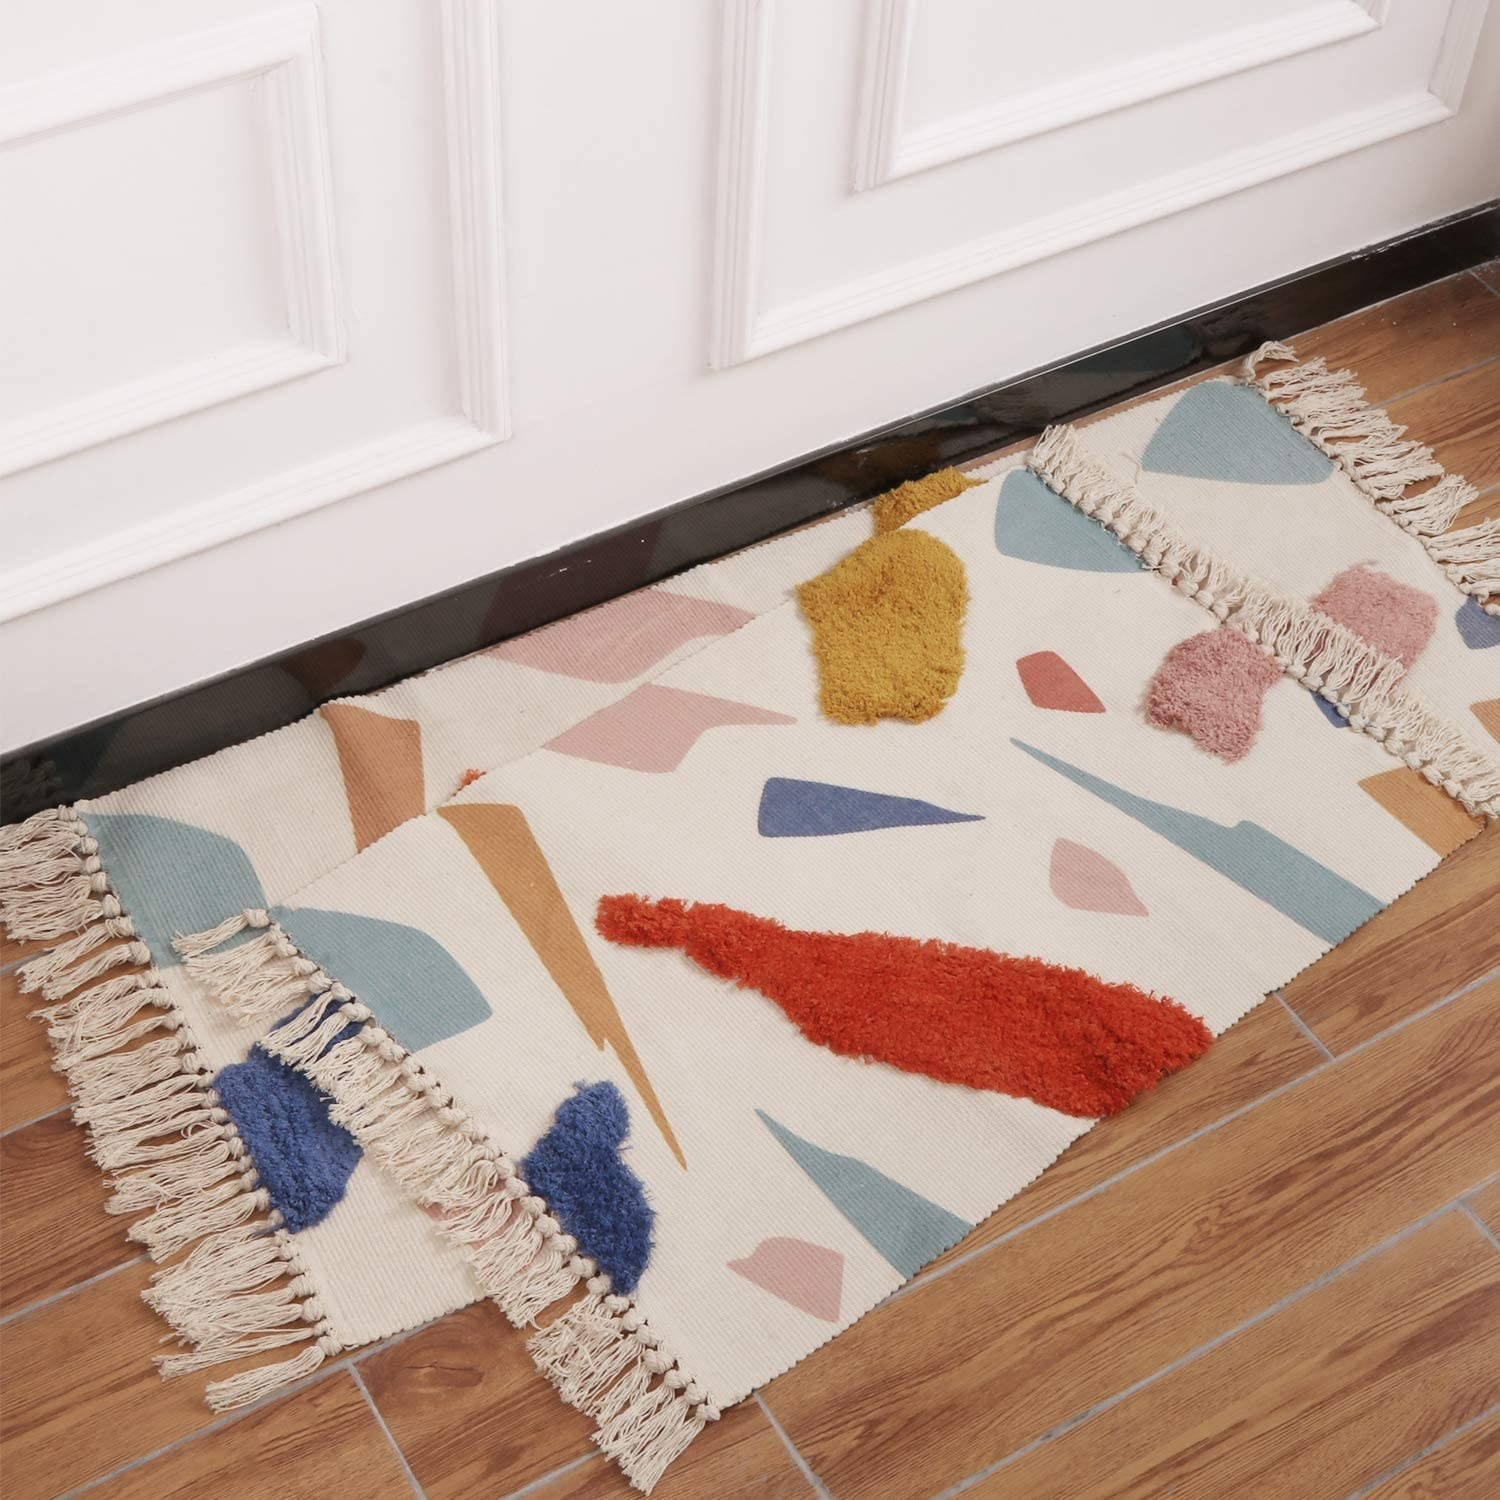 Beige tasseled rugs on top of each other. Both have several different materials and colorful, geometric shapes